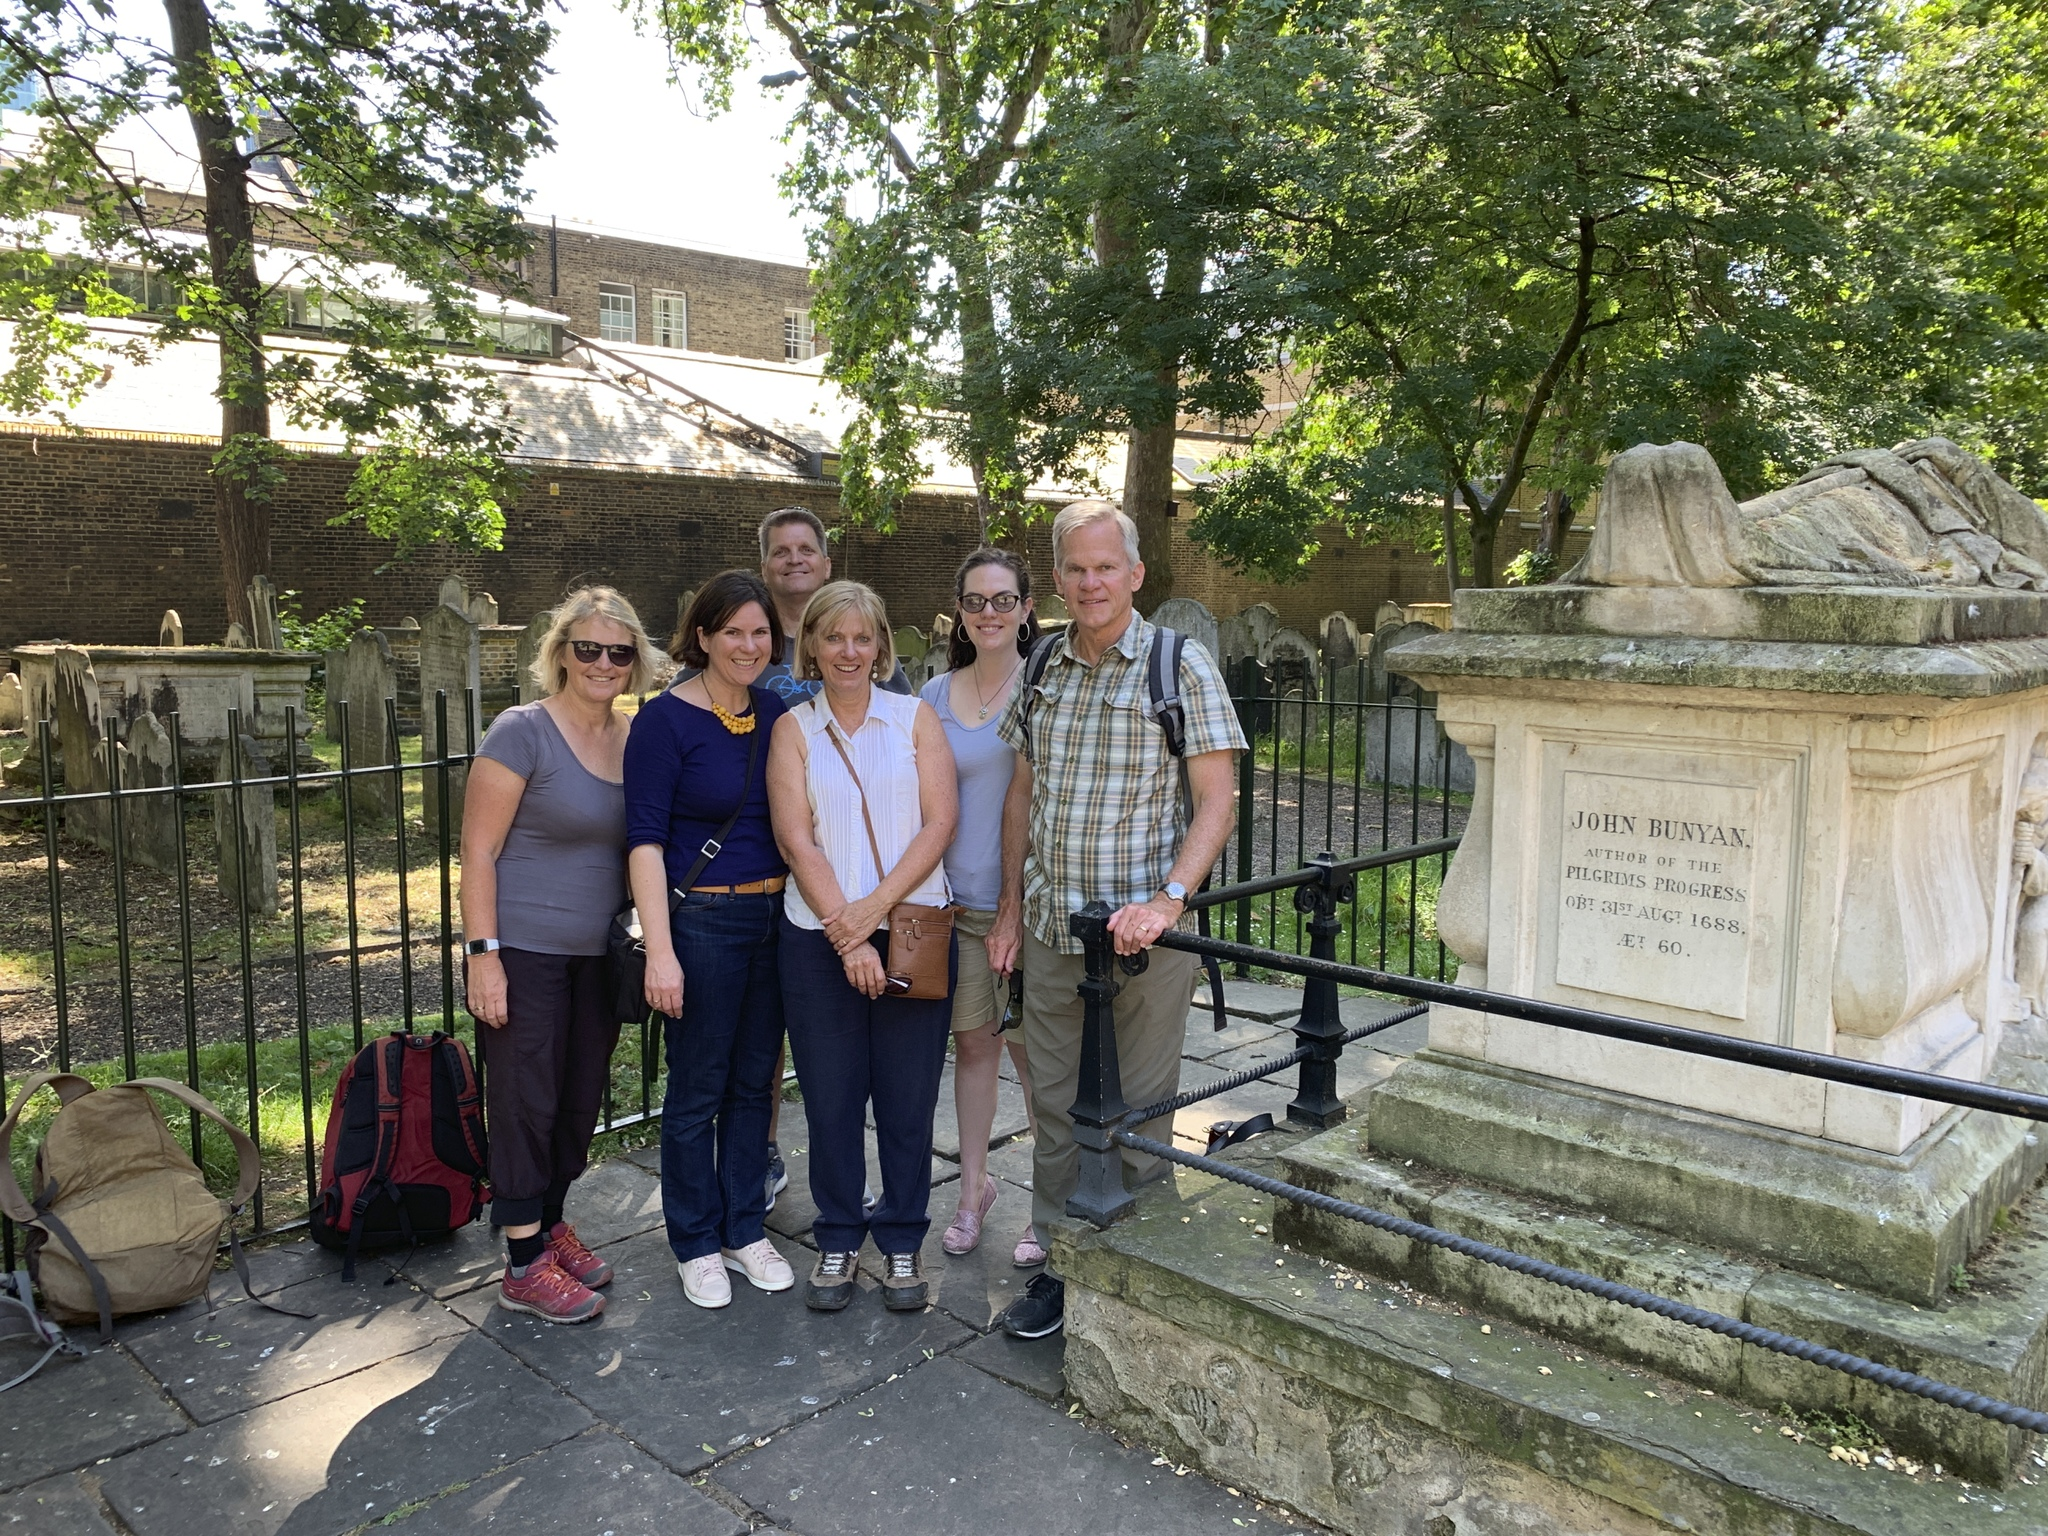 Walking Tour of Baptist Sites in London